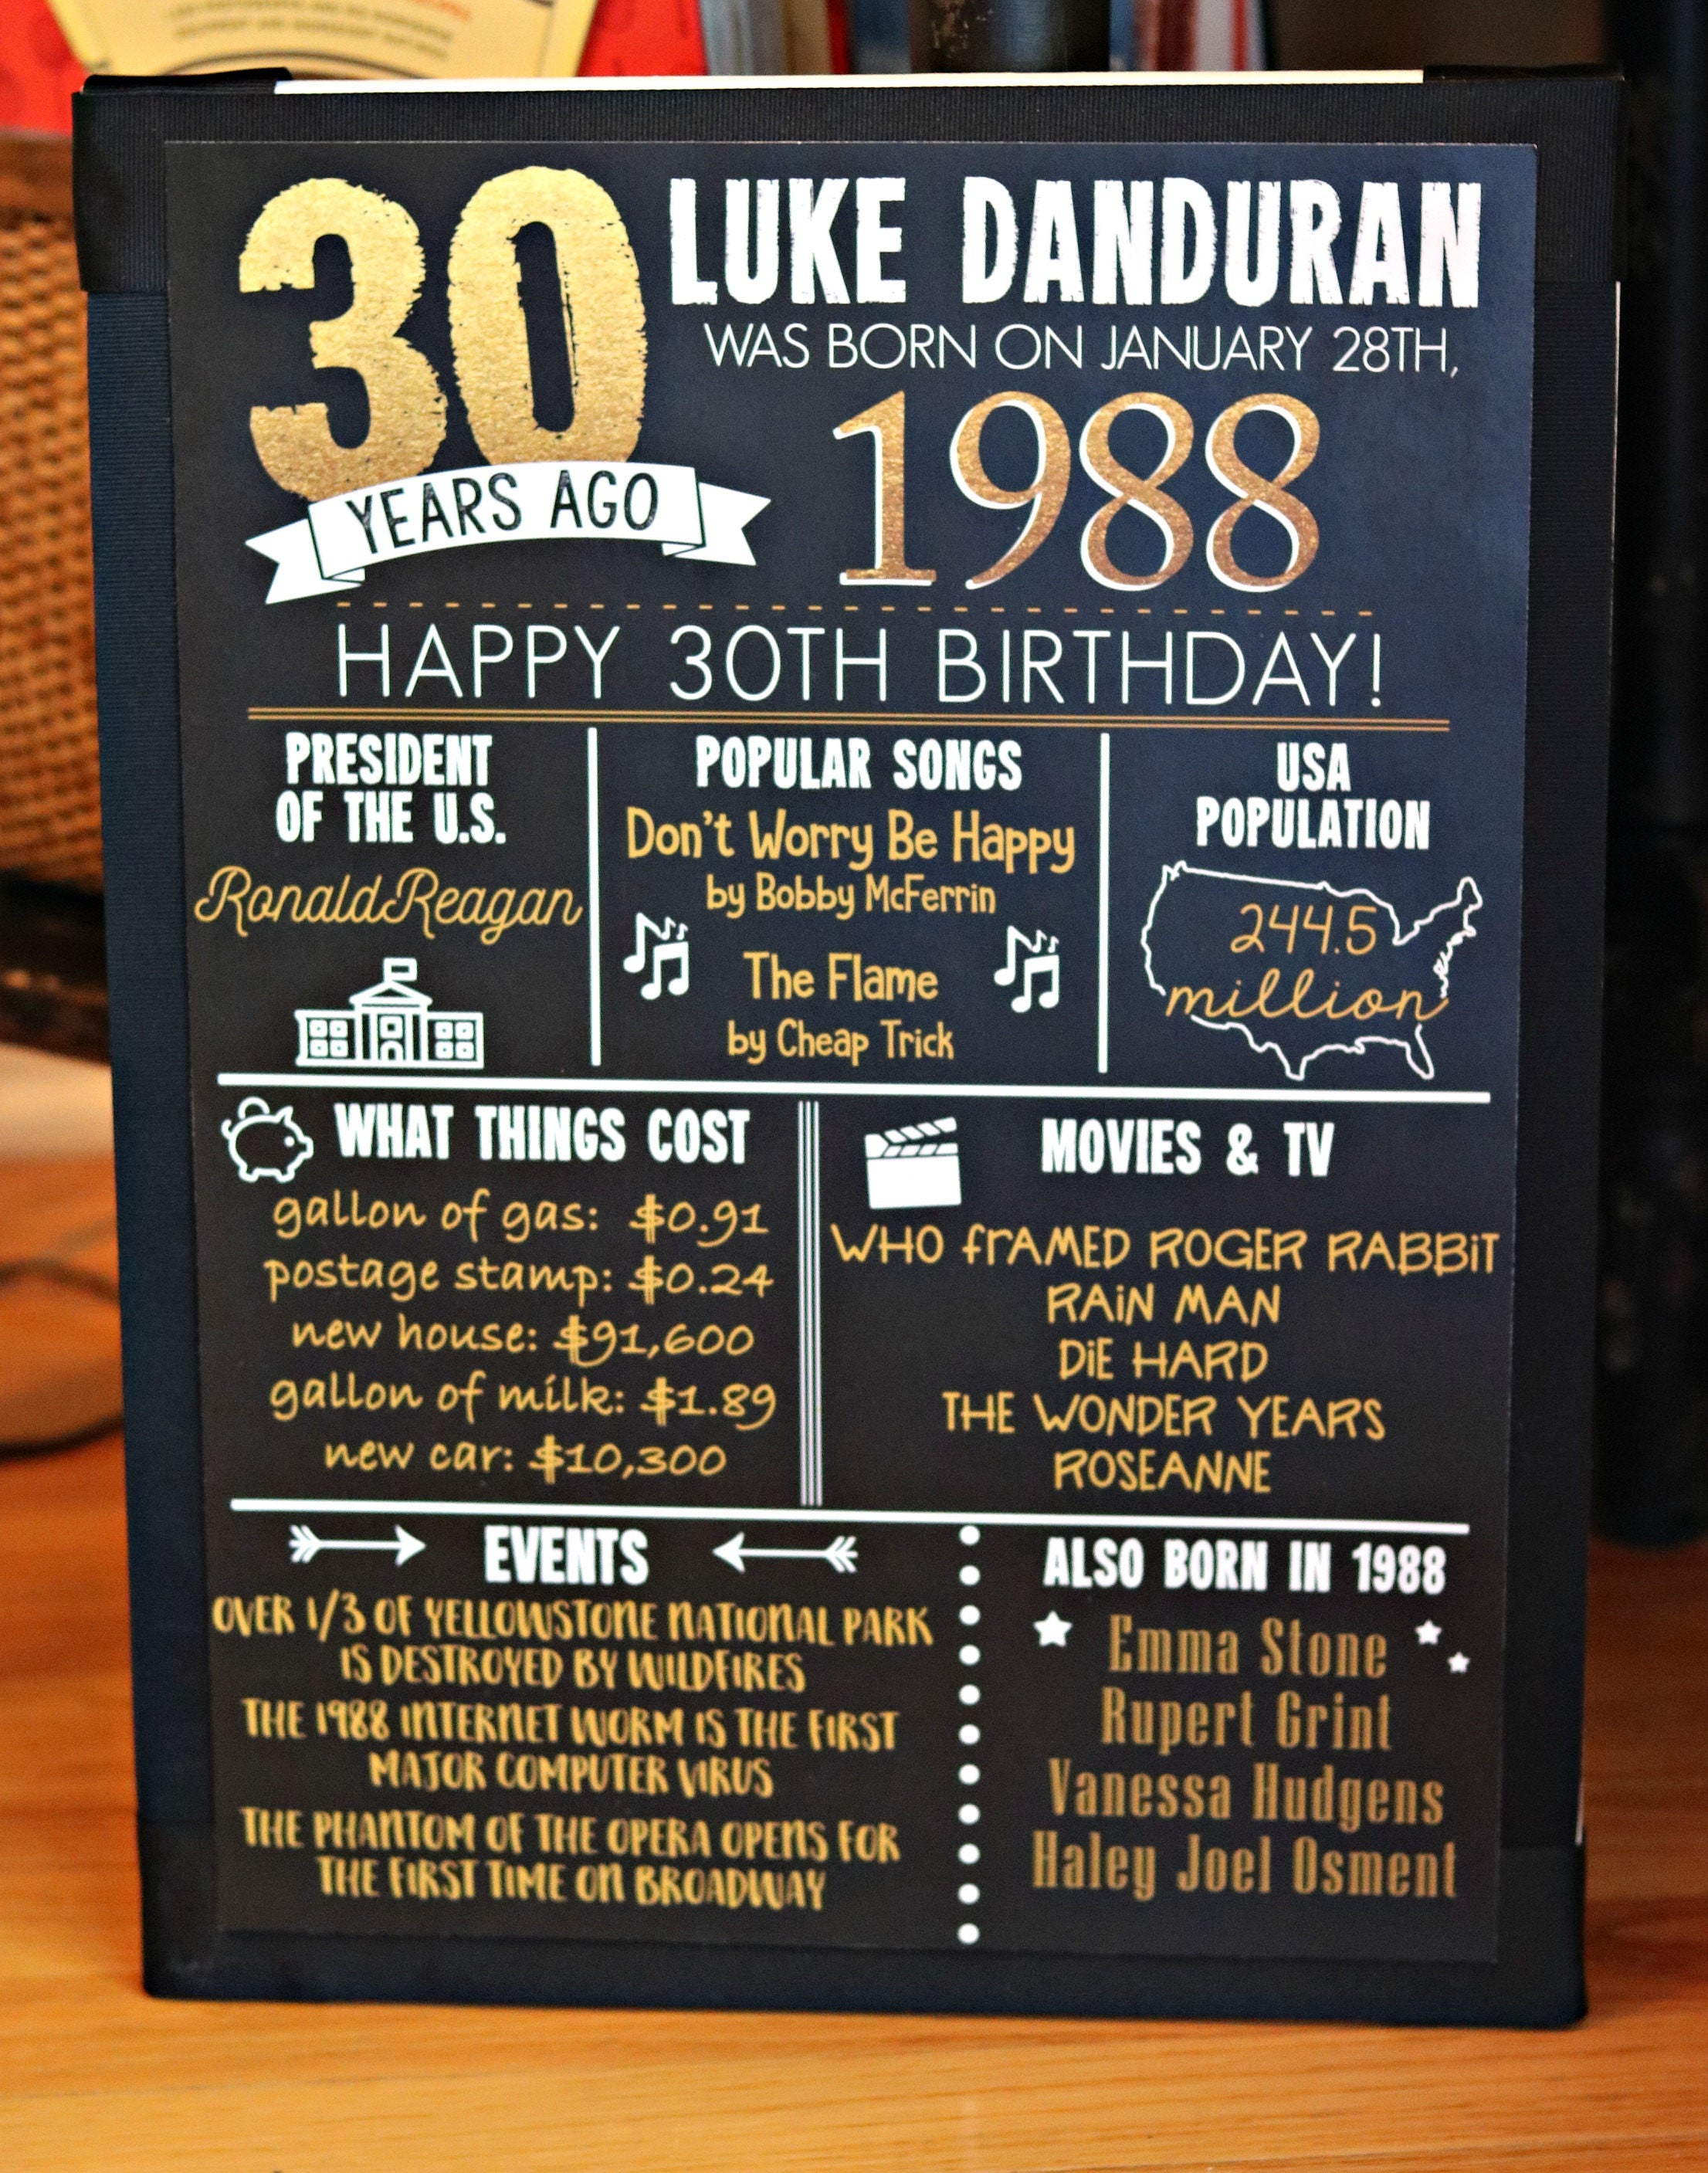 Printed 30th Birthday Poster Back In 1988 What Happened In